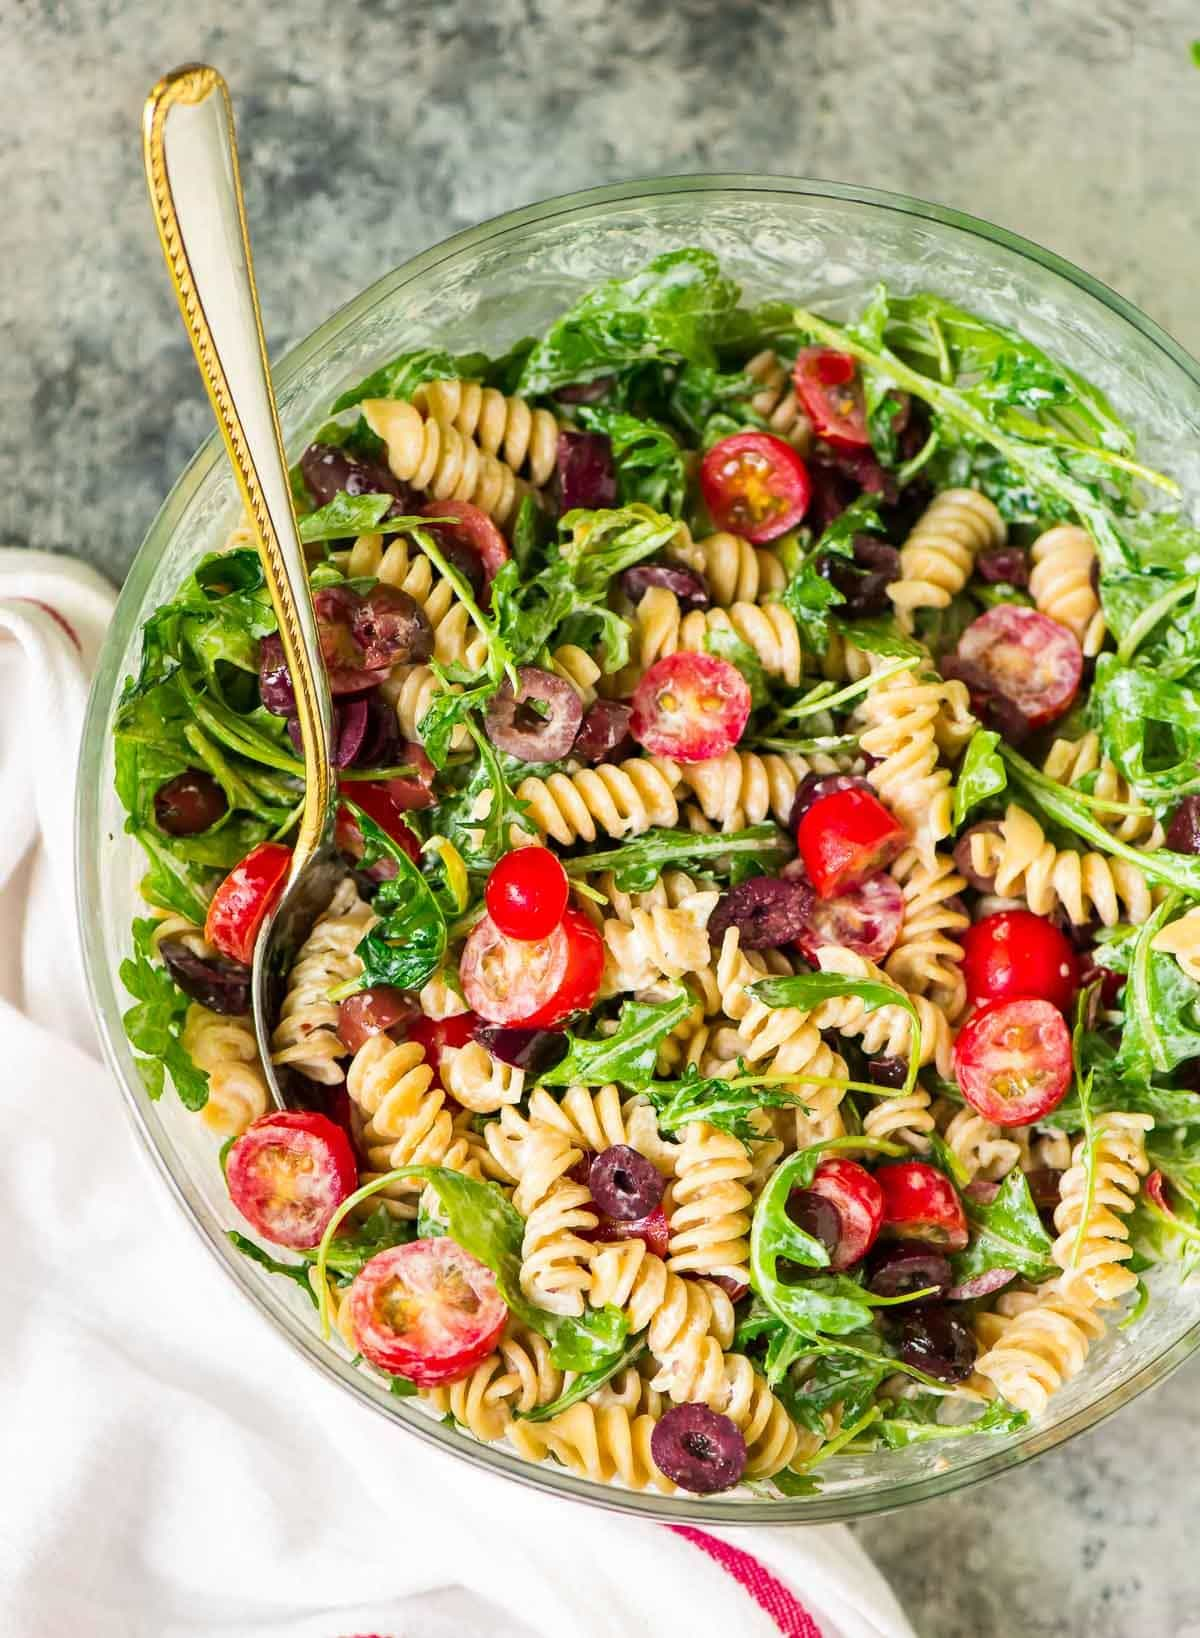 Creamy Goat Cheese Pasta Salad with Arugula and Tomato. Ready in 15 minutes! The perfect picnic recipe for summer barbecues or for a light summer meal. Recipe at wellplated.com   @wellplated